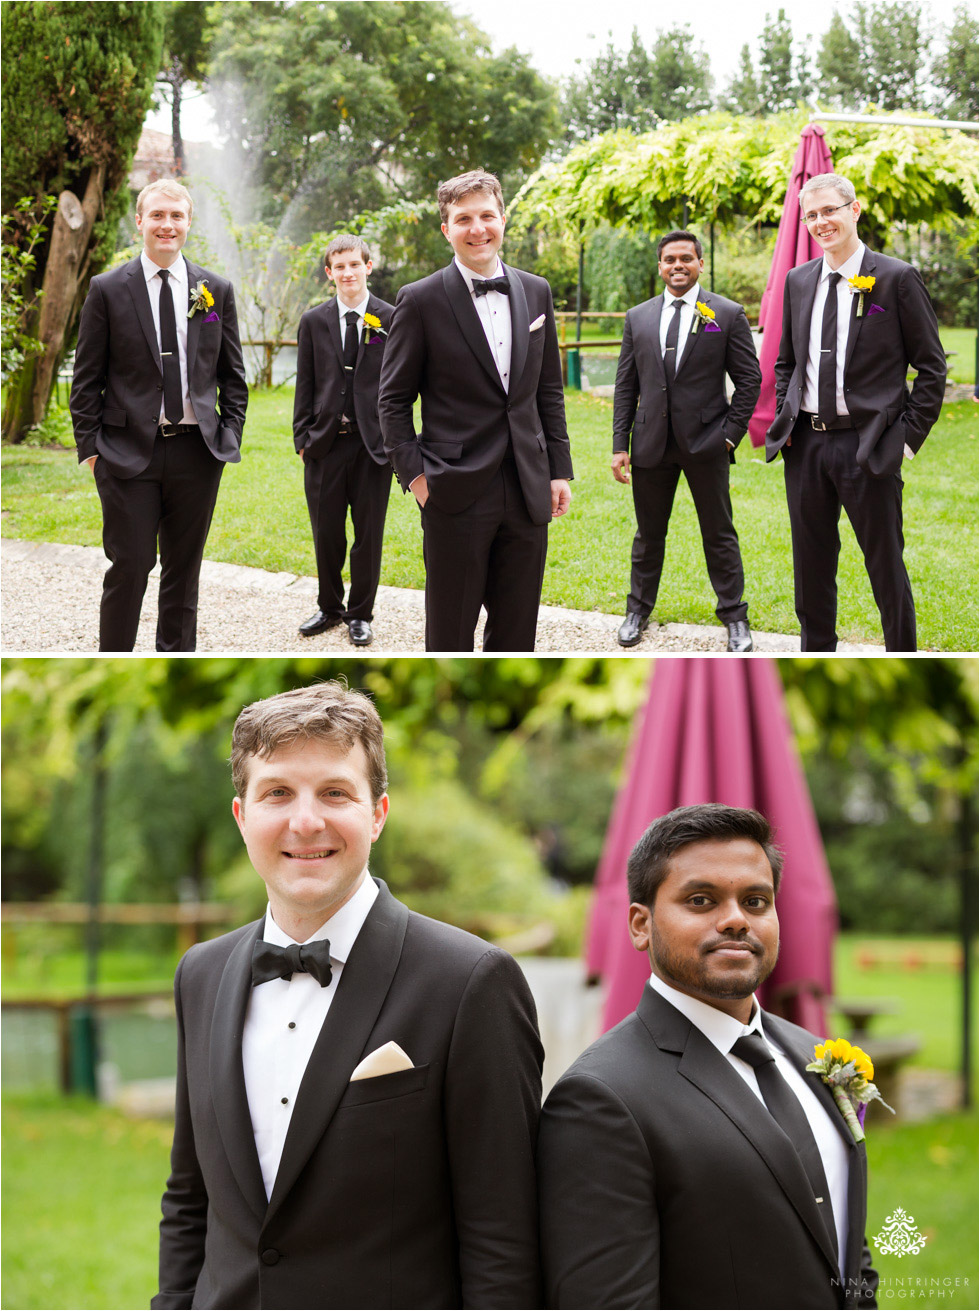 Groomsmen at Villa Damiani in Bassano del Grappa, Italy - Blog of Nina Hintringer Photography - Wedding Photography, Wedding Reportage and Destination Weddings